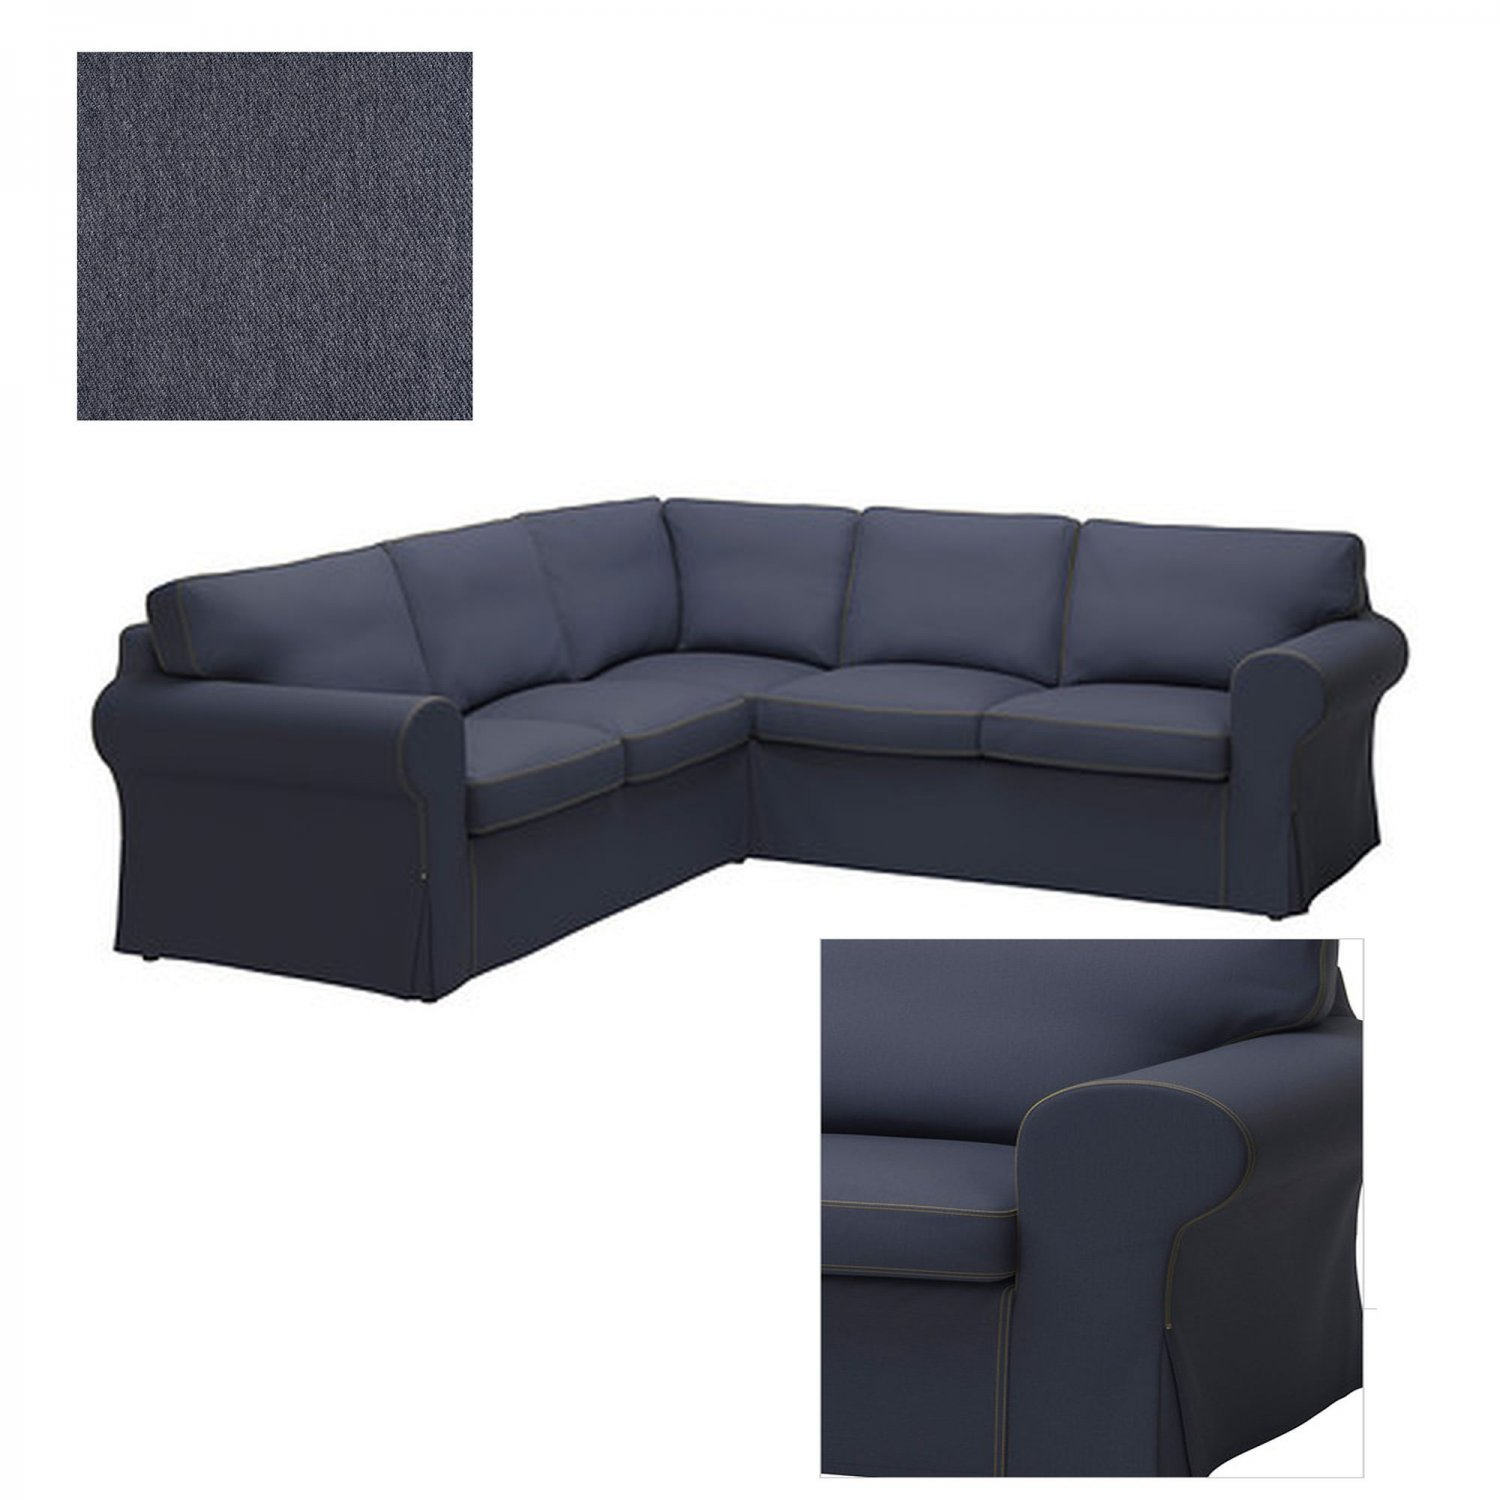 Ikea ektorp 2 2 corner sofa cover slipcover jonsboda blue denim Denim loveseat